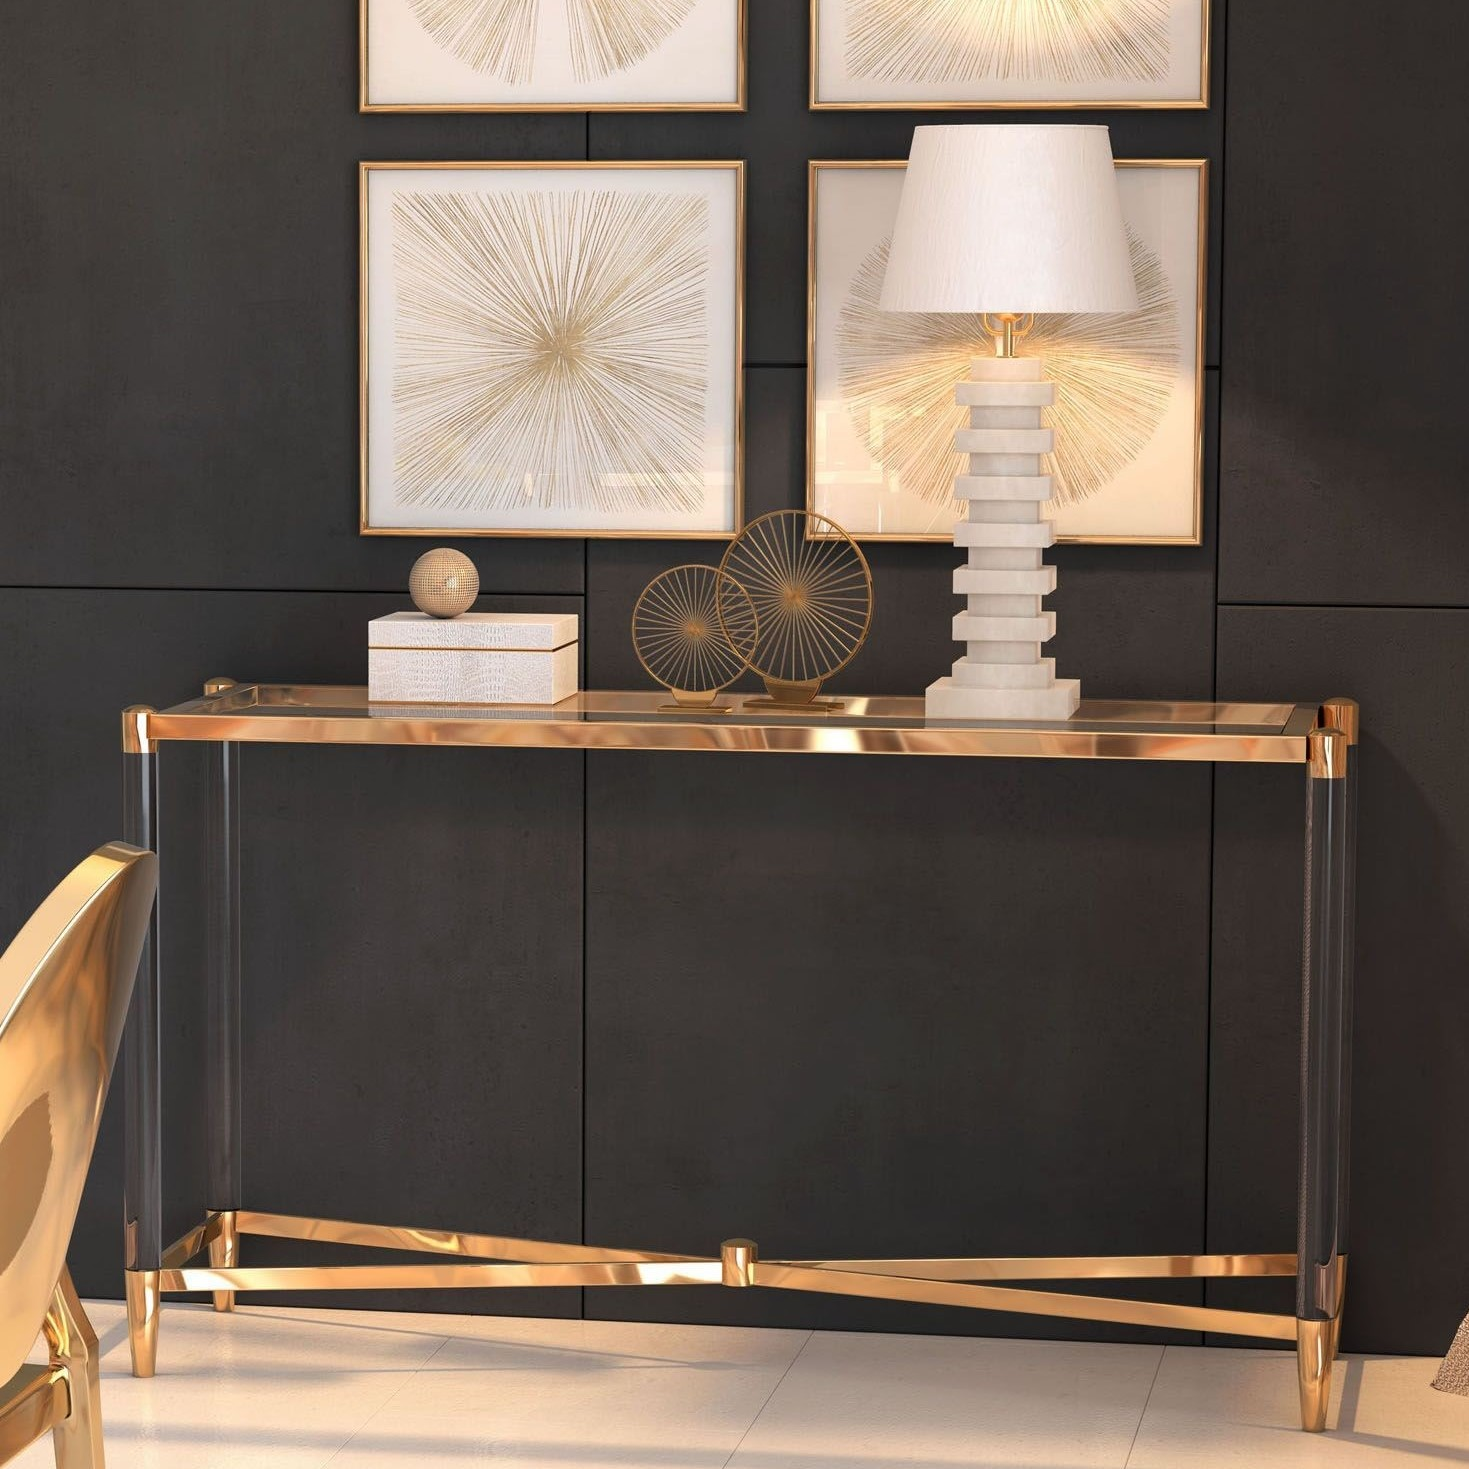 dining room interior design trends spring 2020 with console table